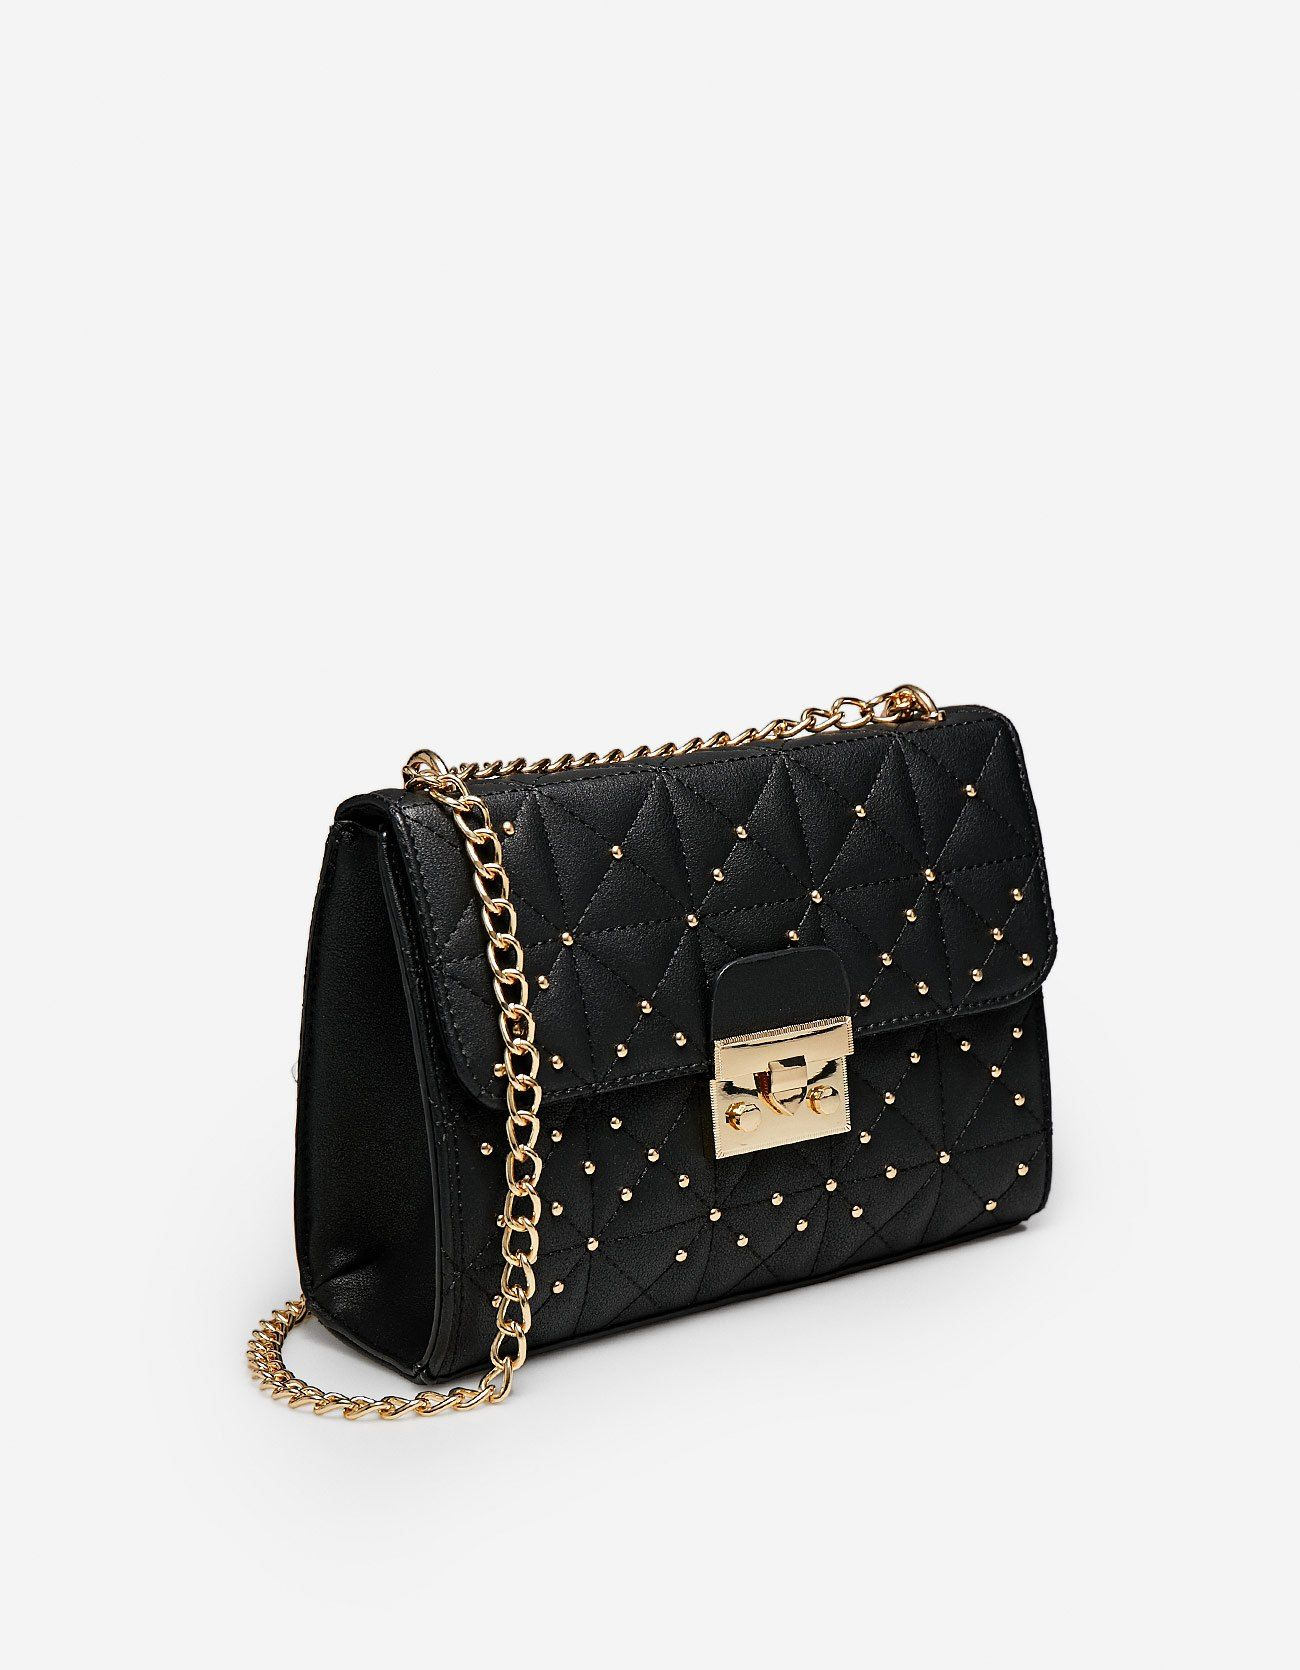 At Stradivarius You 39 Ll Find 1 Quilted Crossbody Bag With Studs For Just 15 99 France Visit Now To Discove Quilted Crossbody Bag Studded Bag Crossbody Bag